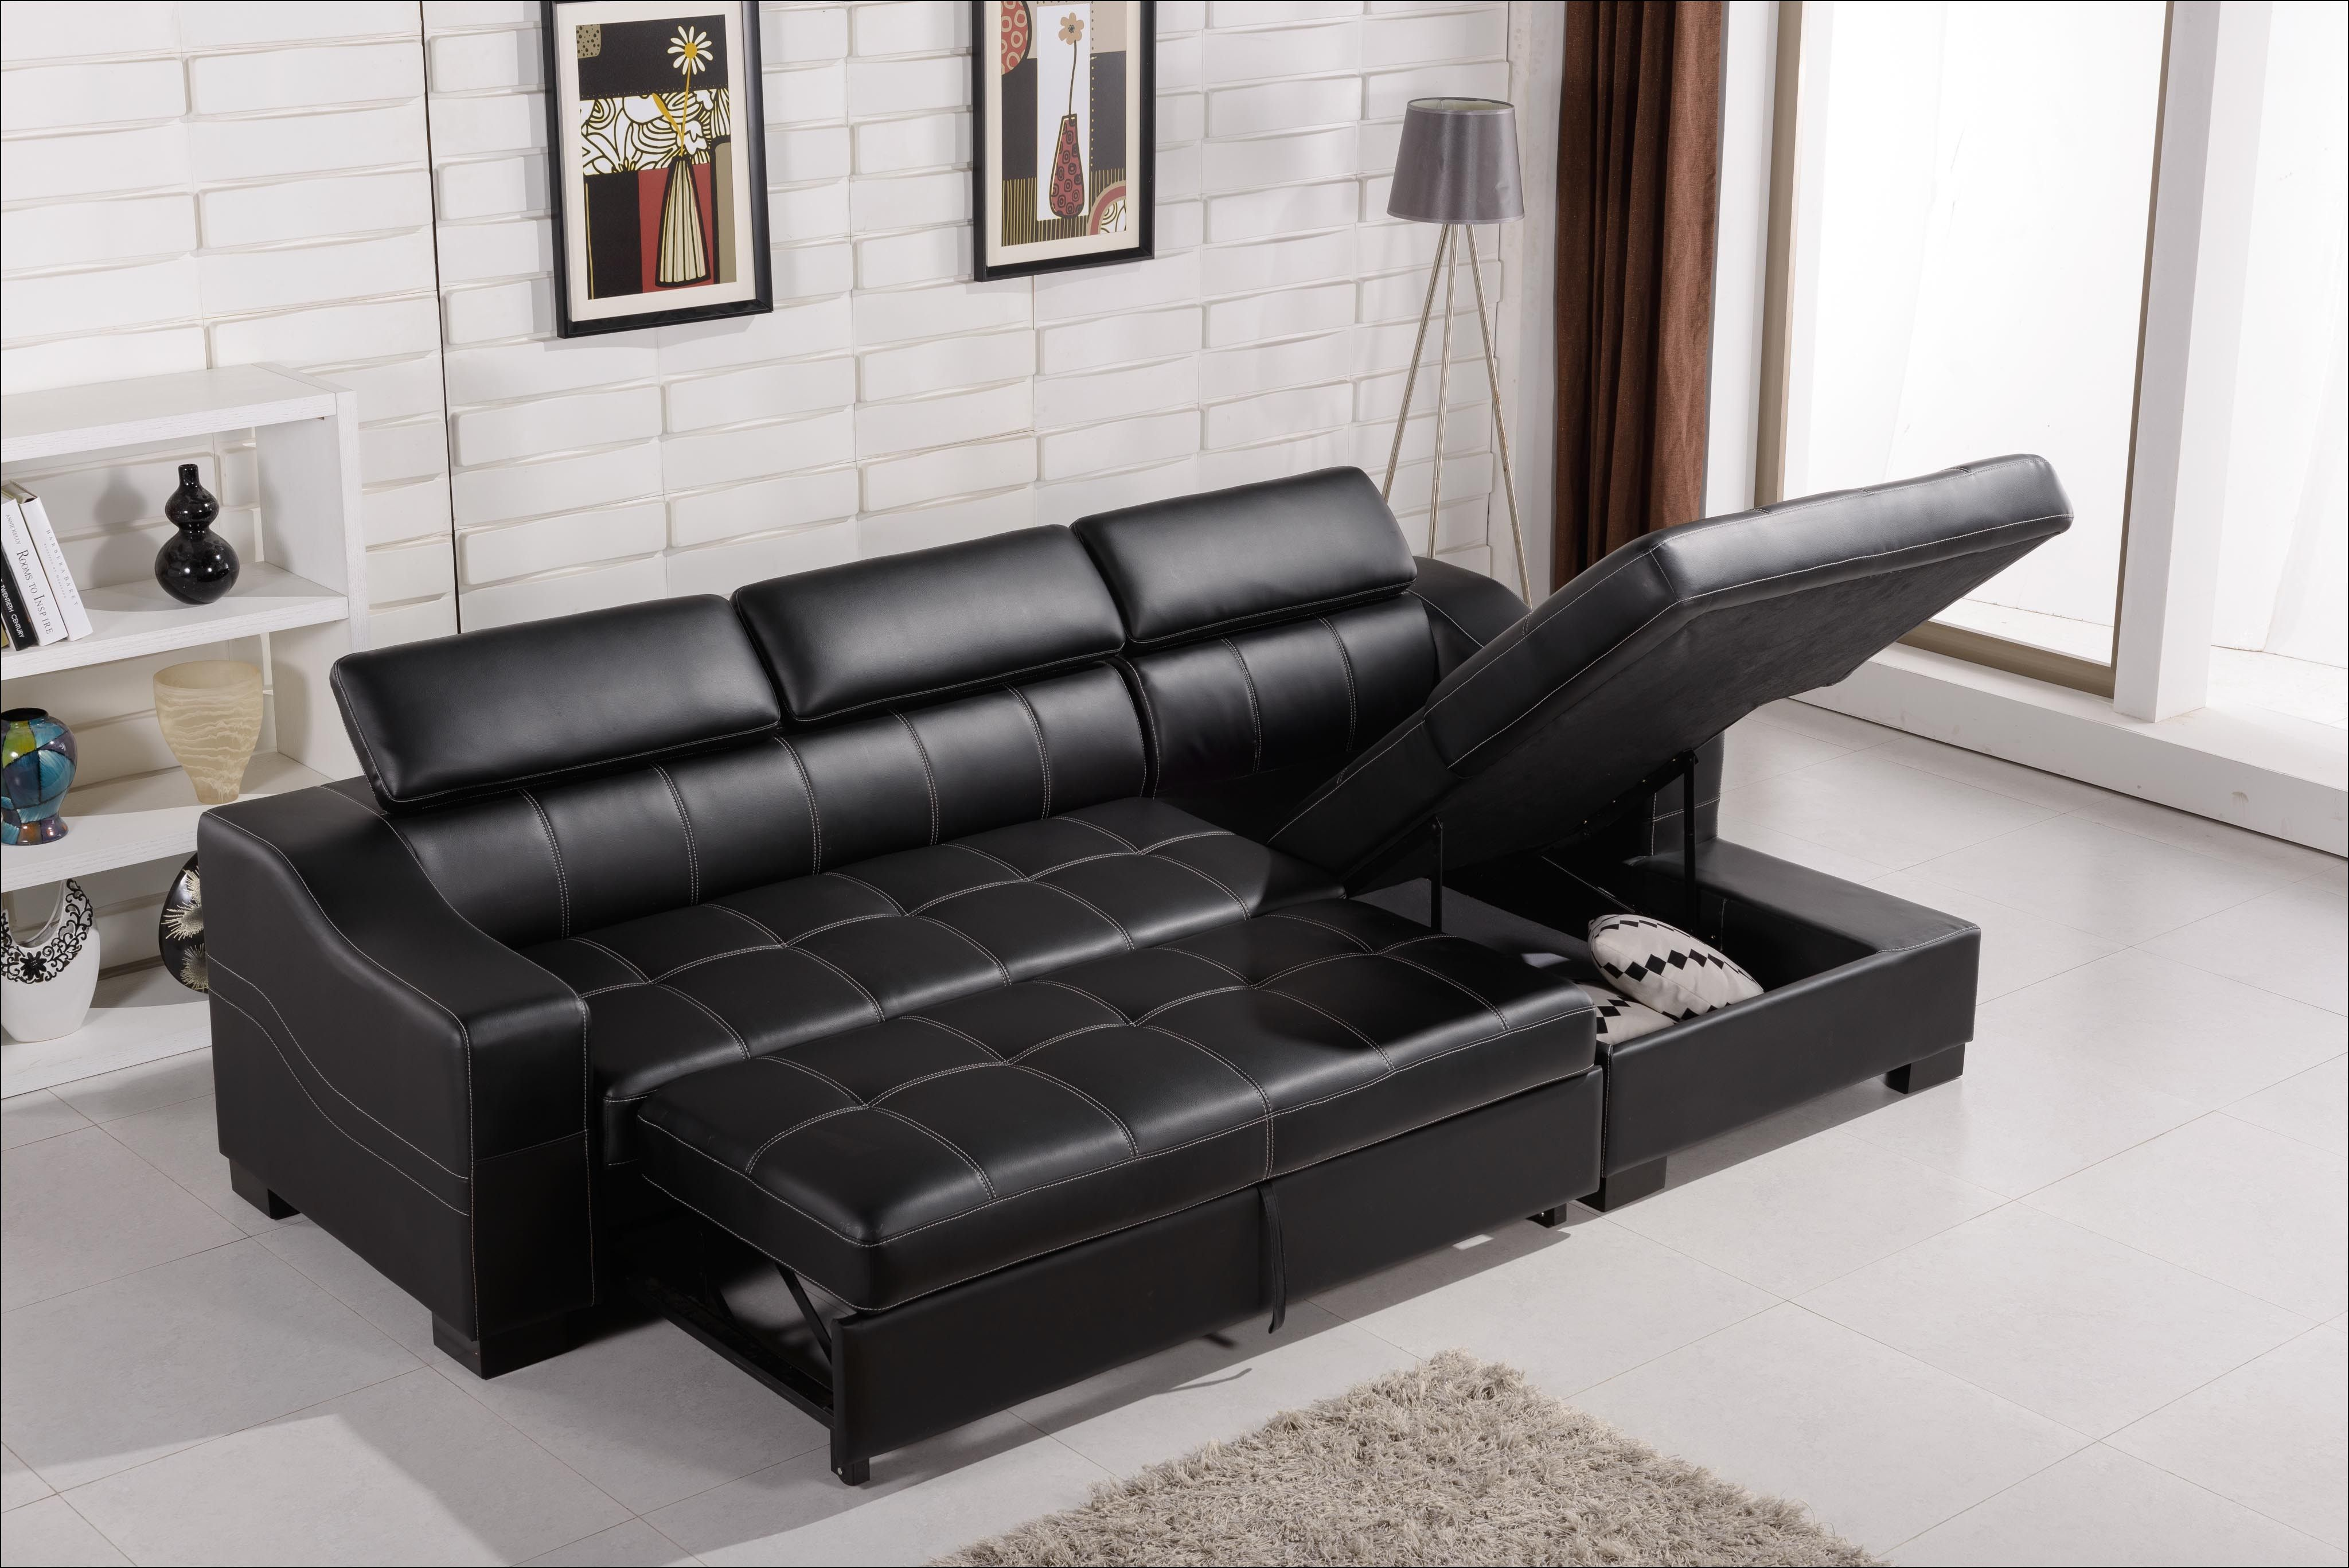 Sofas That Turn Into Beds Black Leather Sofa Bed Leather Sofa